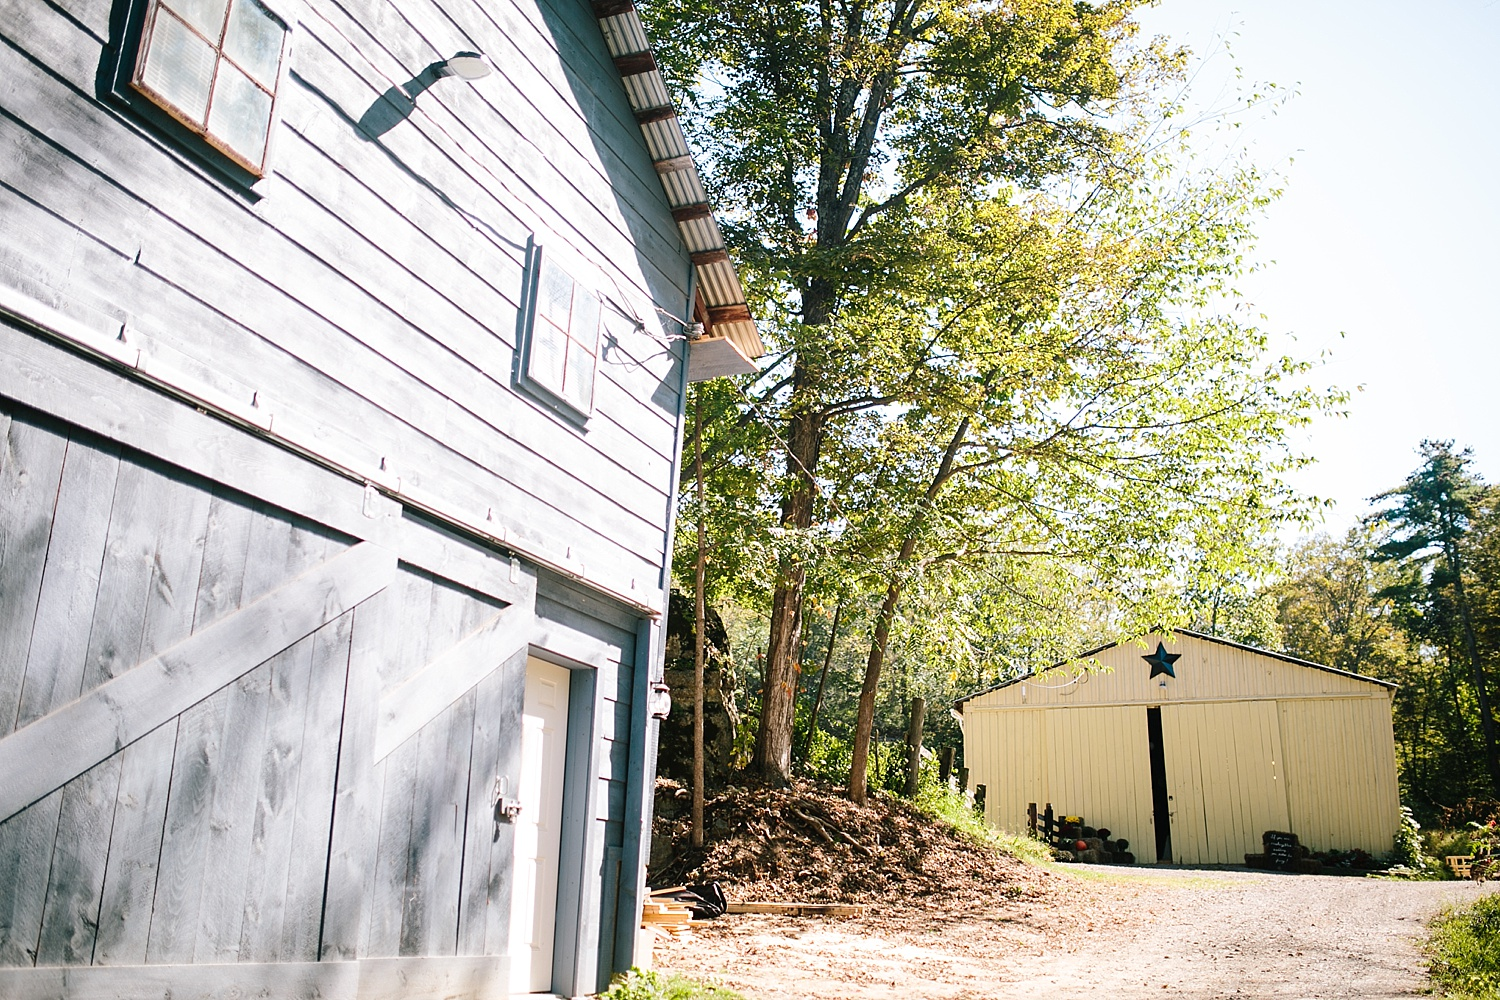 jennyryan_newbeginnings_farmstead_upstatenewyork_wedding_image001.jpg